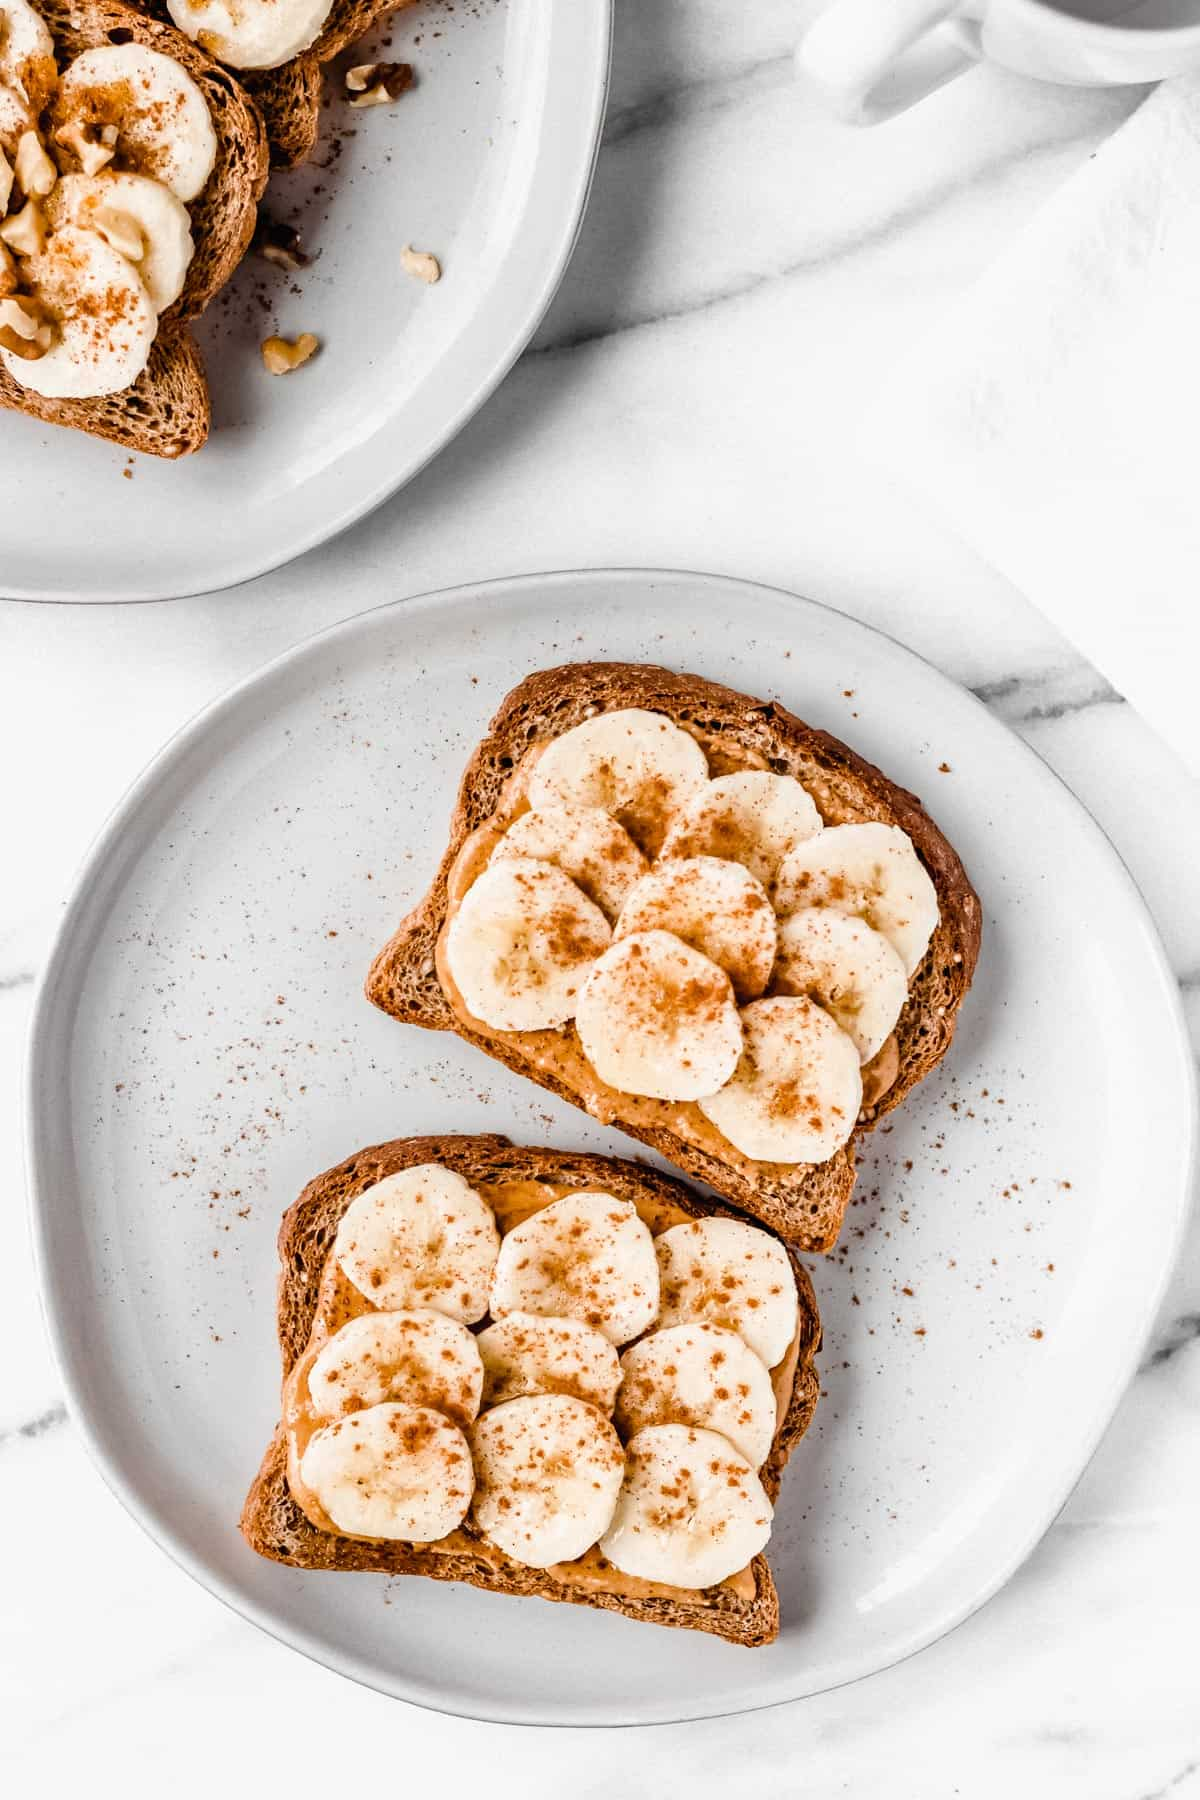 Overhead of banana toast with peanut butter, cinnamon and honey on a white plate